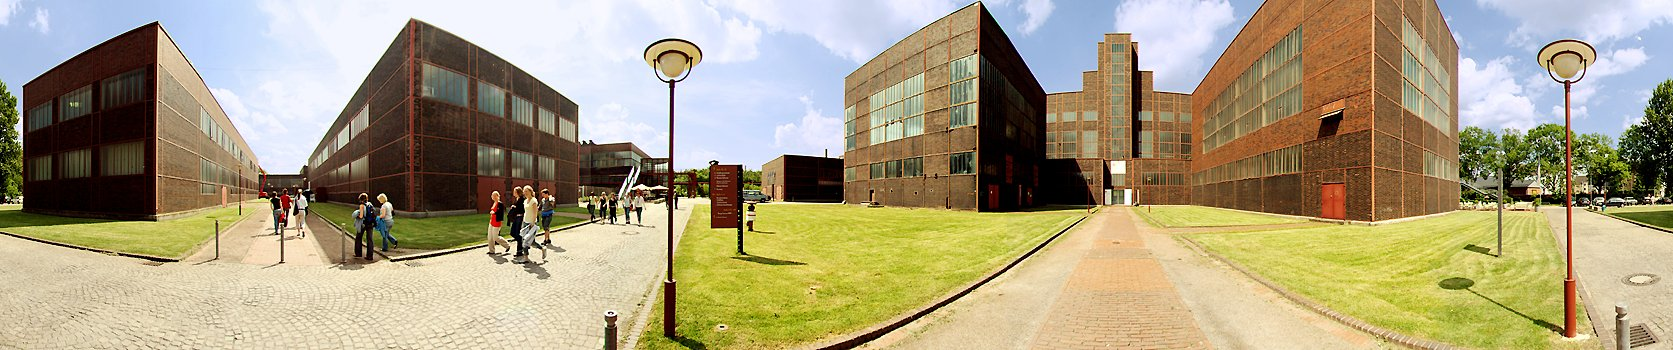 Design Zentrum Zollverein